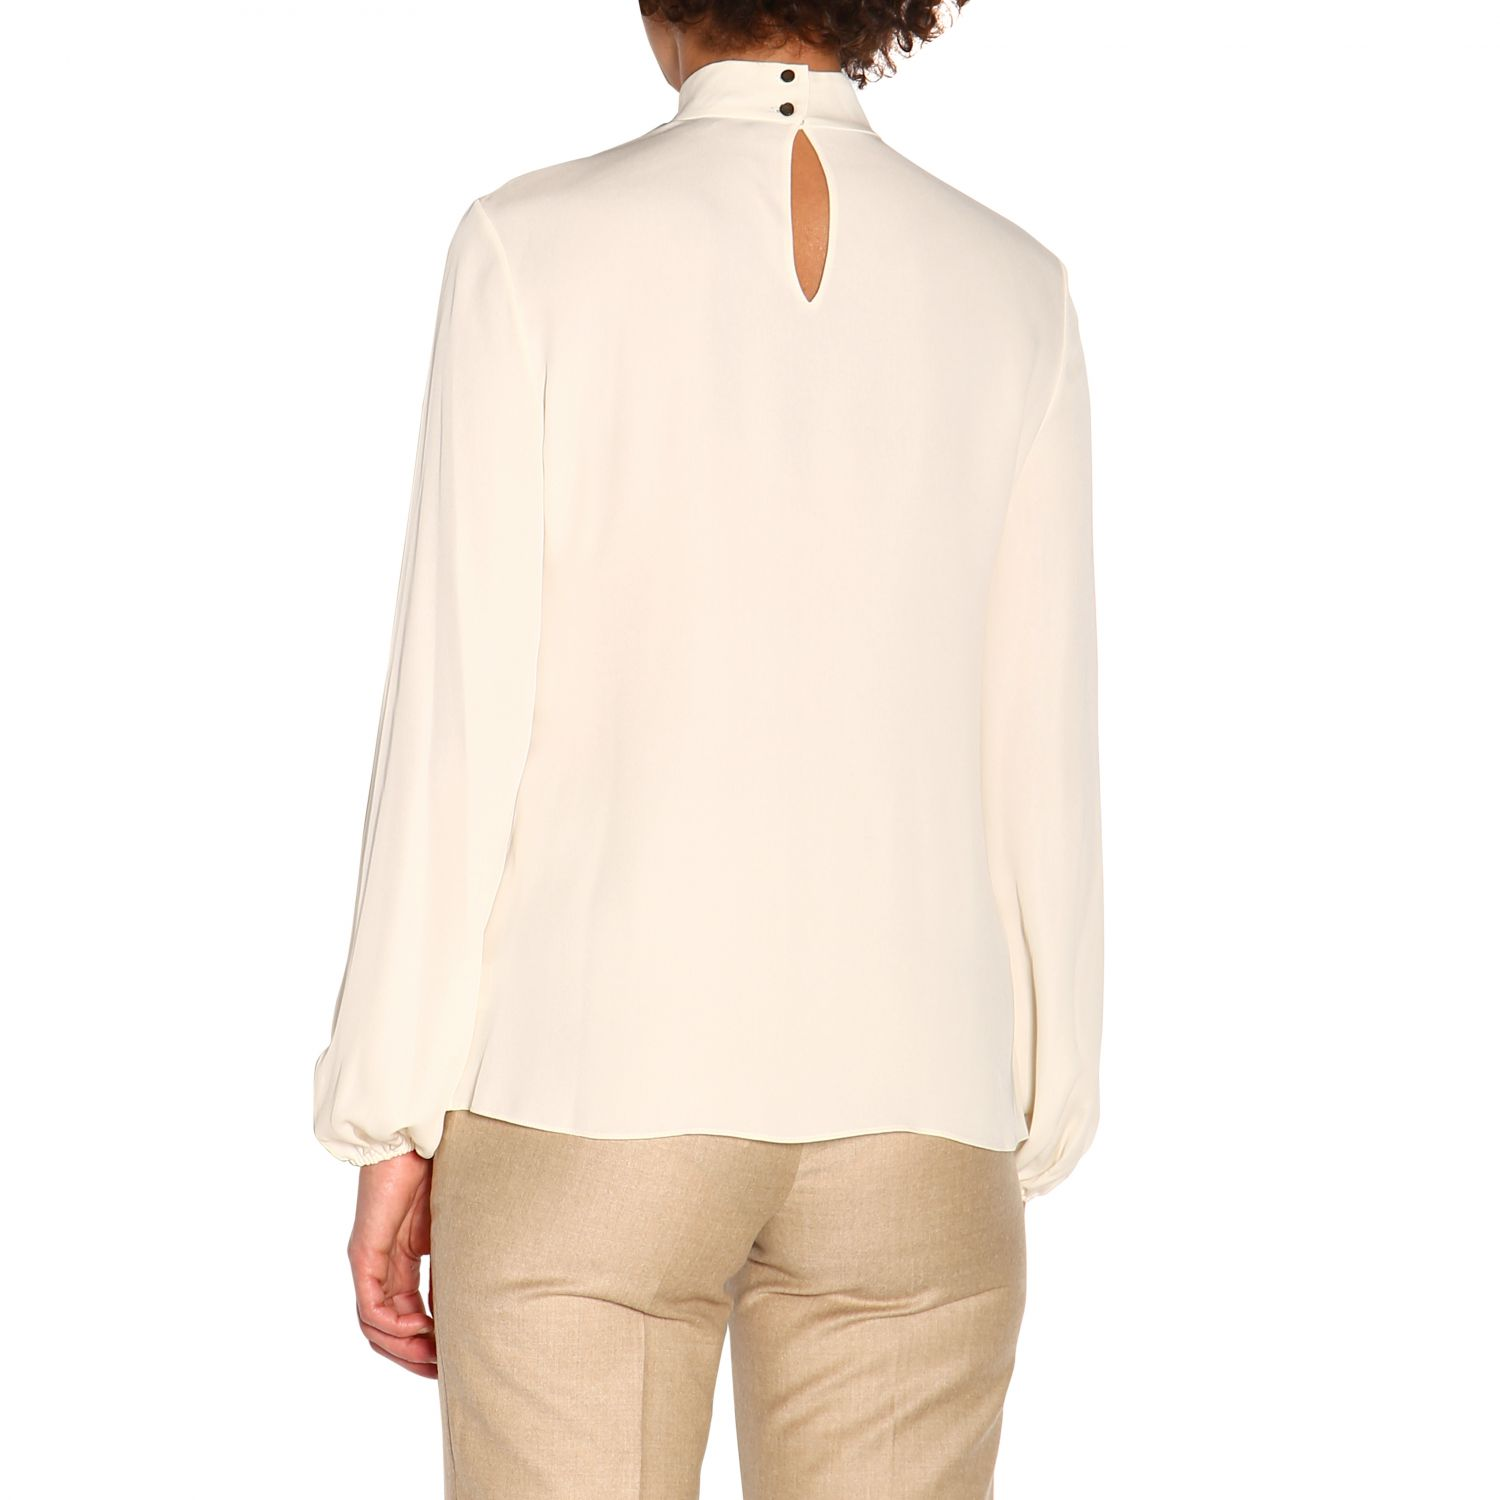 T-shirt women Theory ivory 3